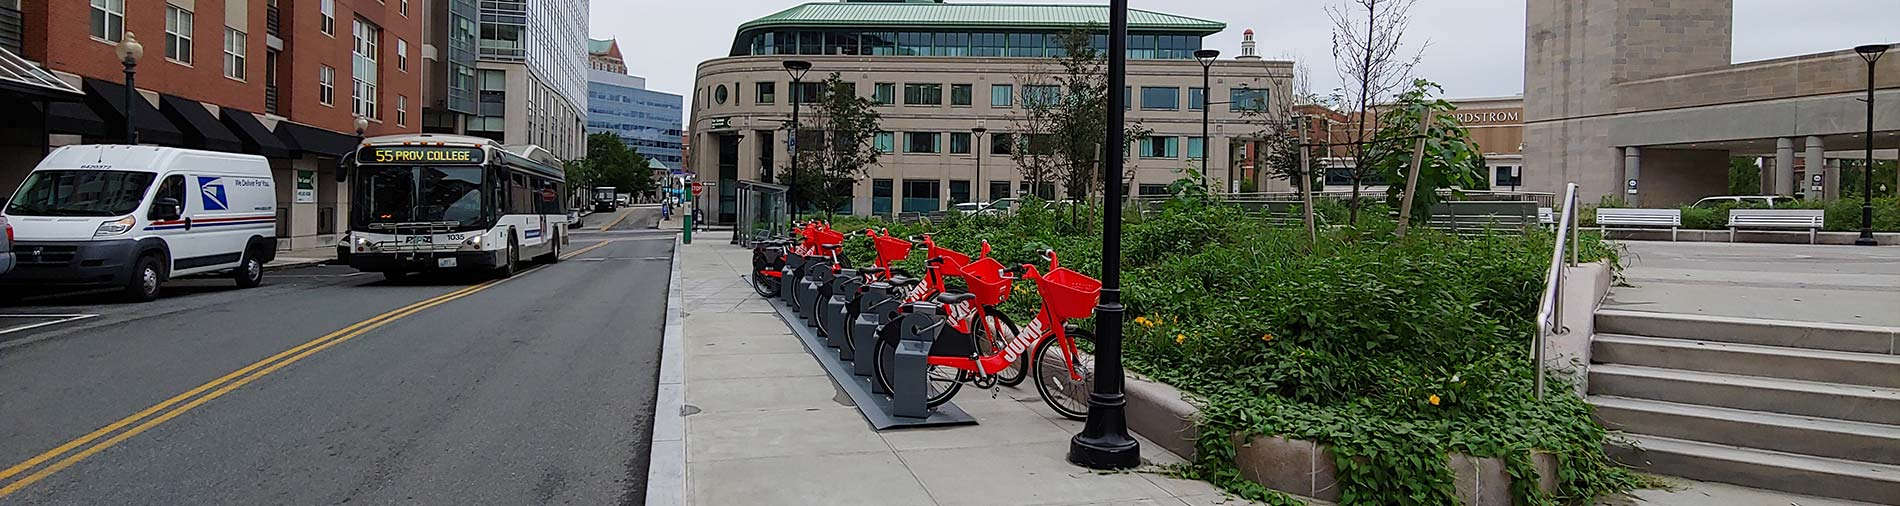 Bike-share site, on a bus route in downtown Providence half-filled with bicycles.